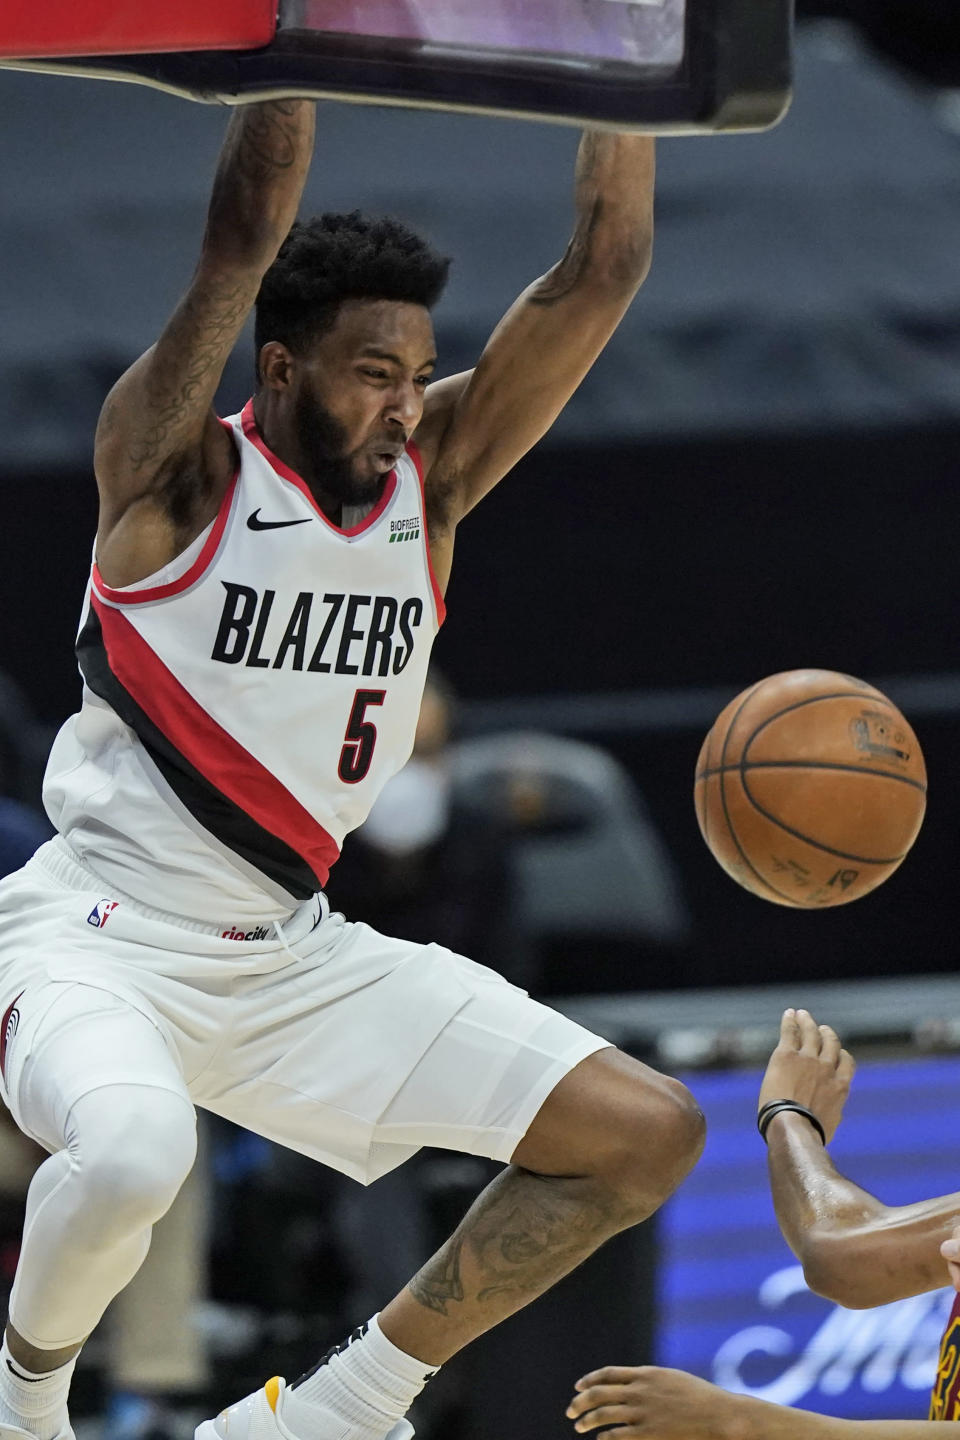 Portland Trail Blazers' Derrick Jones Jr. dunks during the second half of the team's NBA basketball game against the Cleveland Cavaliers, Wednesday, May 5, 2021, in Cleveland. (AP Photo/Tony Dejak)